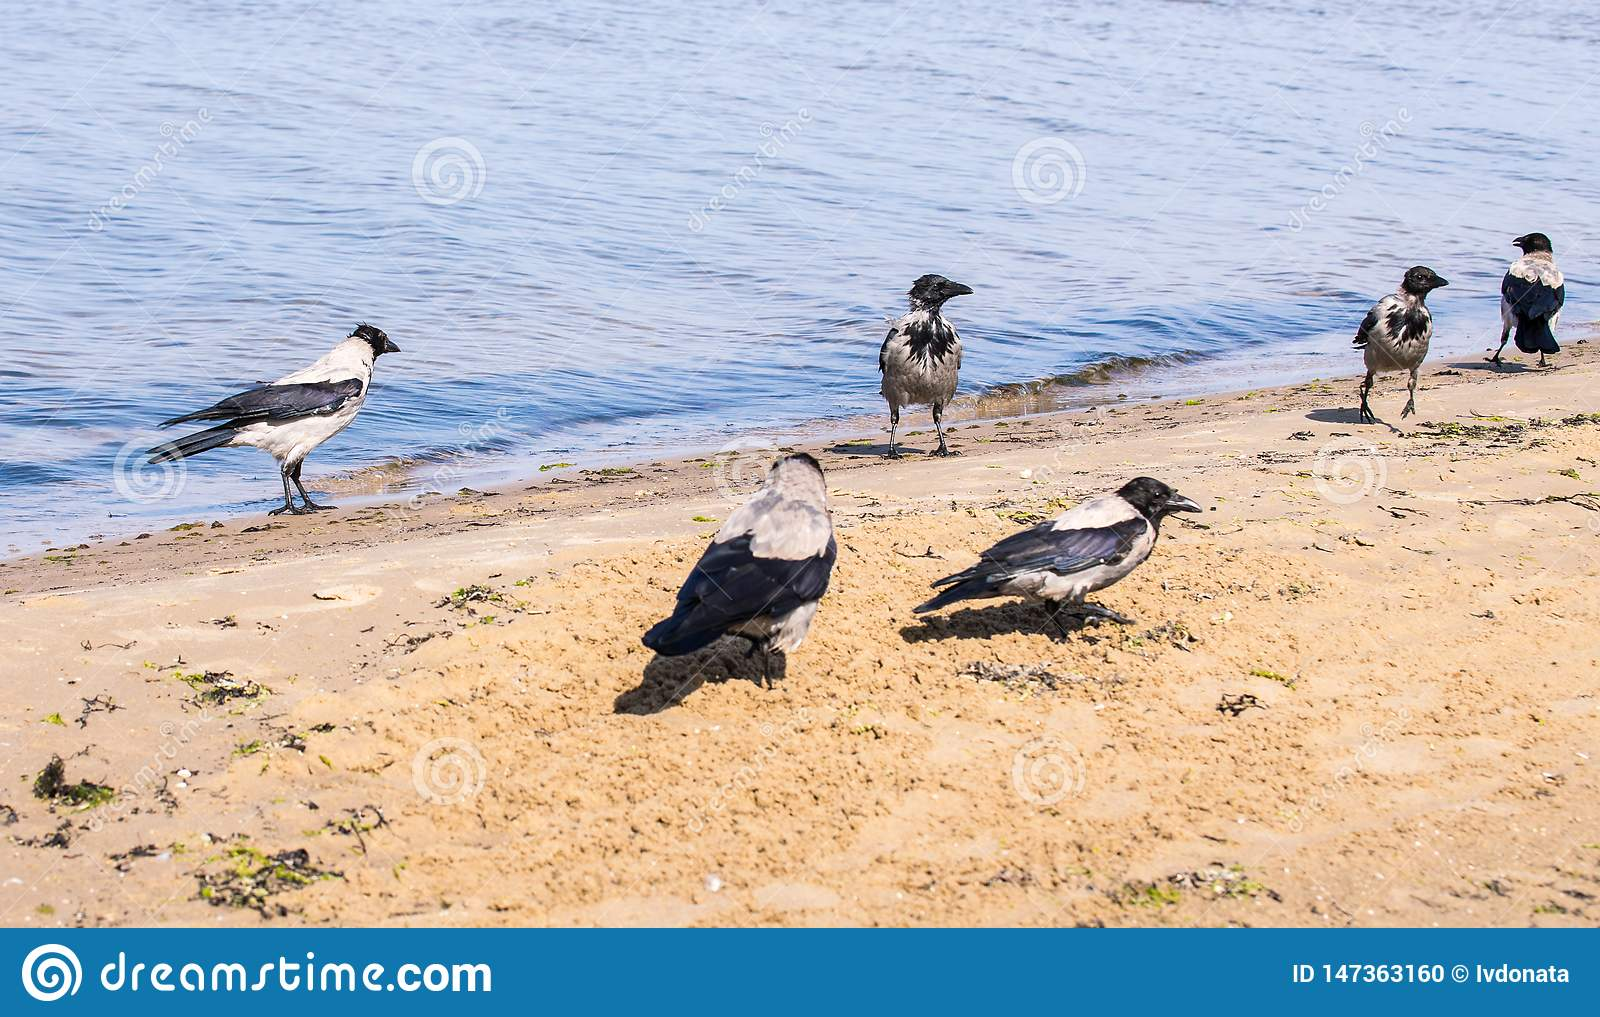 Six gray crows walking in shallow water on a sunny day